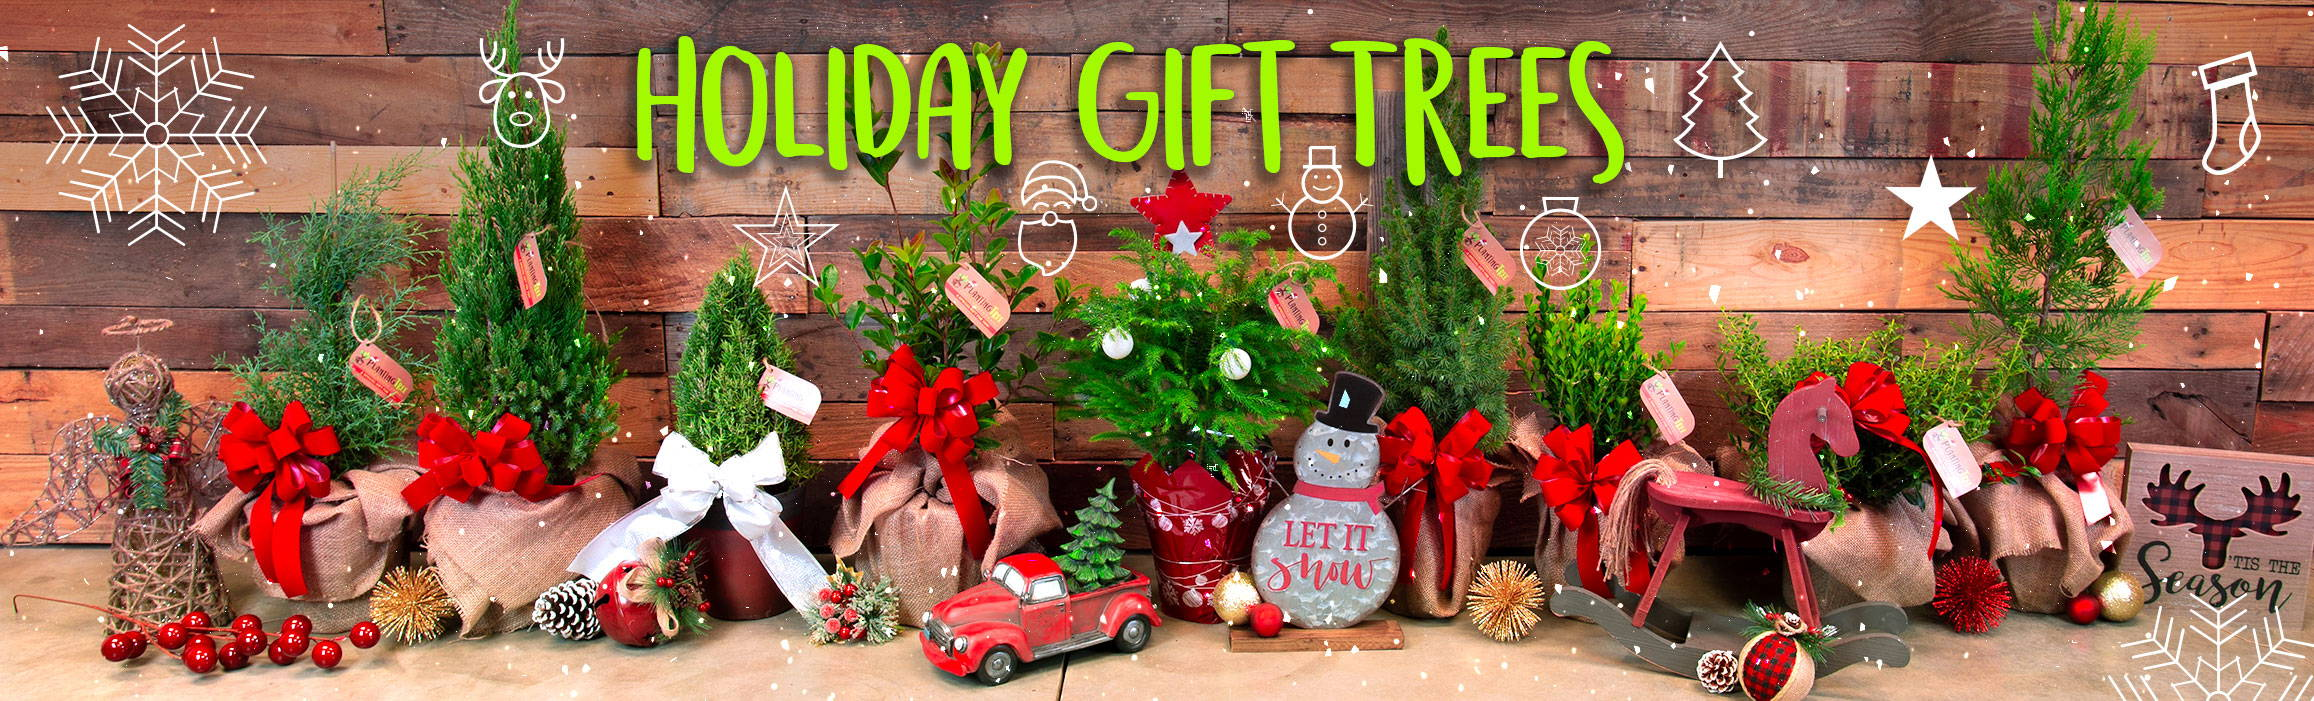 holiday gift trees